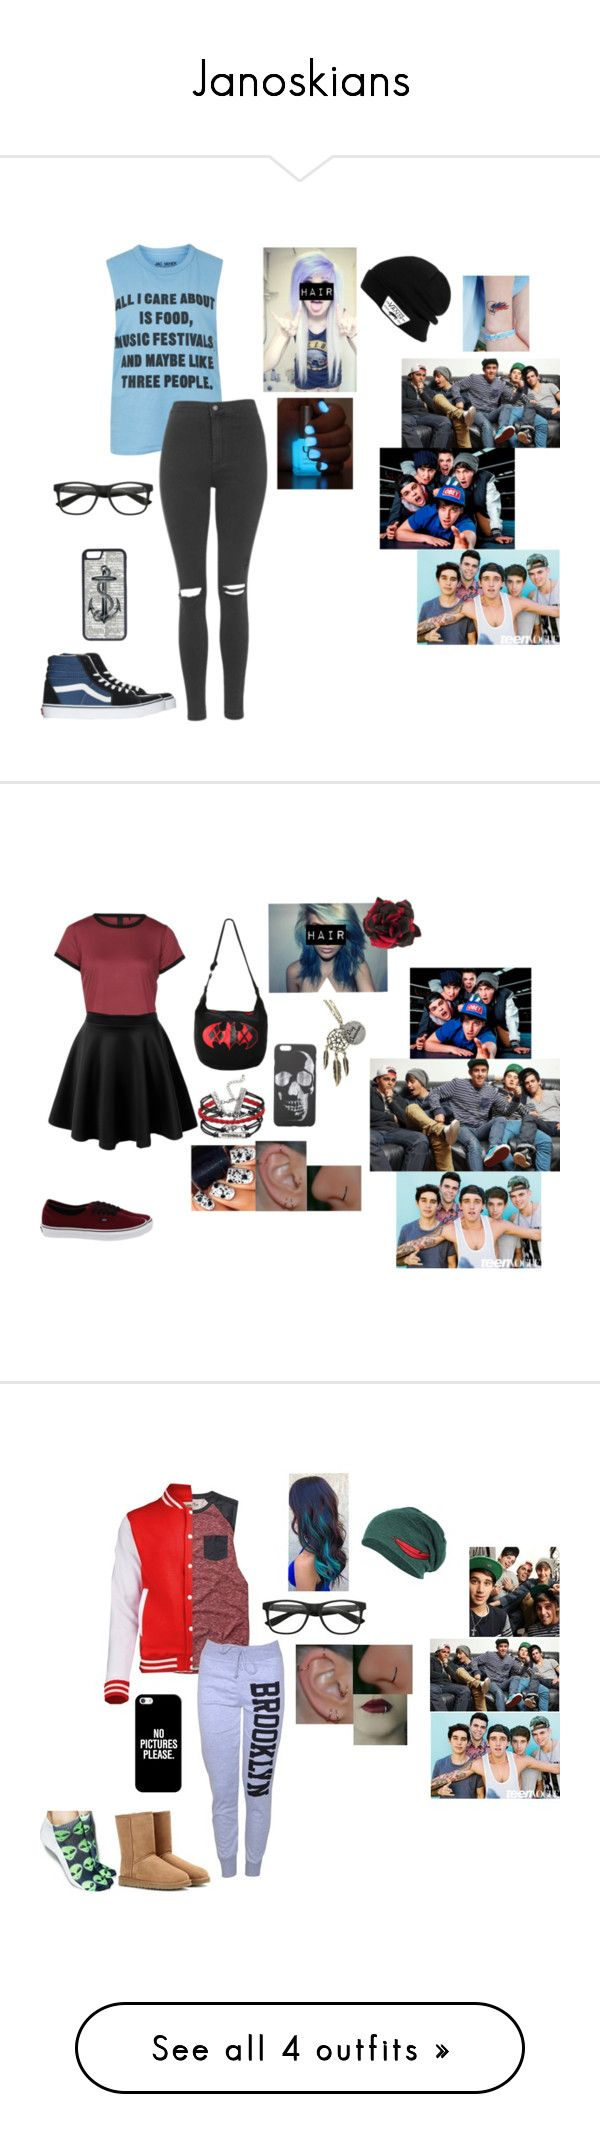 """Janoskians"" by emolover2002 on Polyvore featuring Topshop, Vans, CellPowerCases, LE3NO, Alessandra Rich, Hollister Co., Living Royal, UGG Australia, Casetify and J Brand"